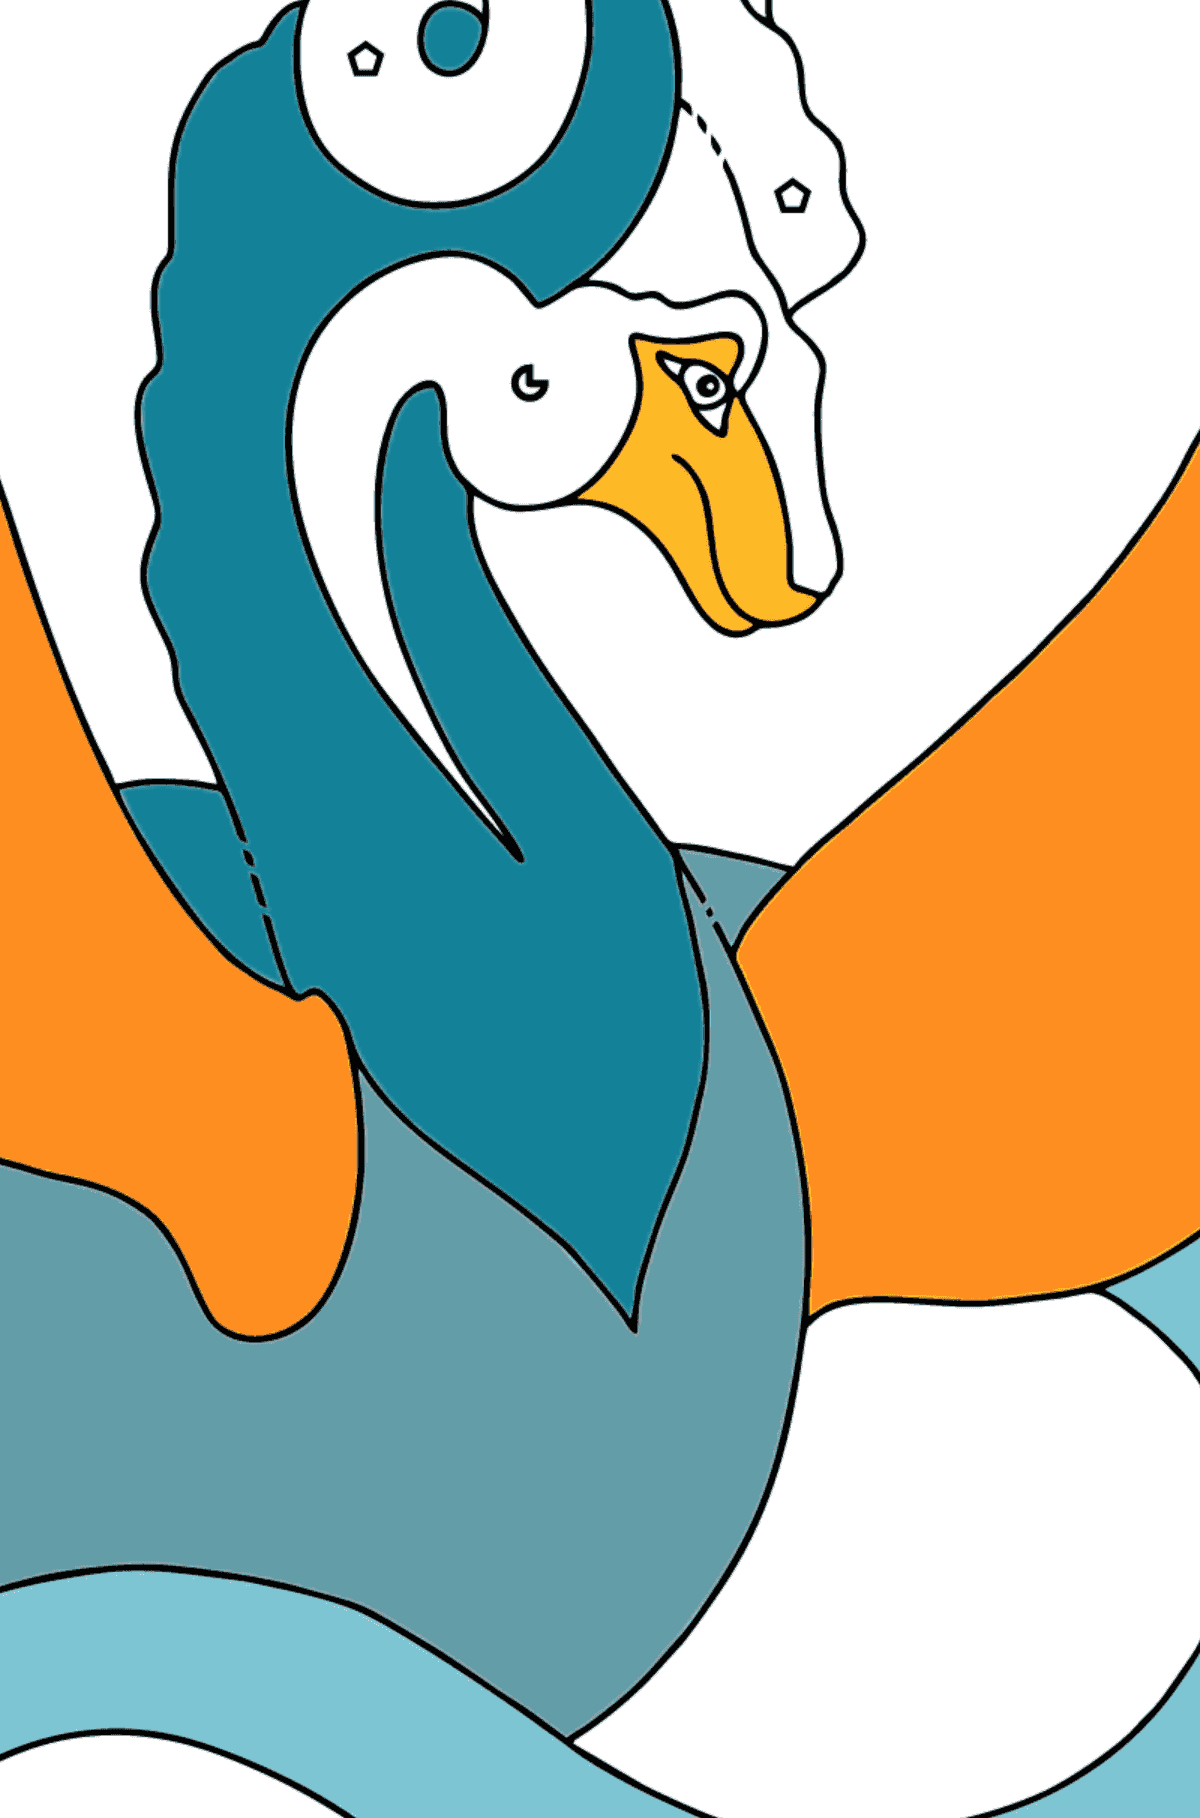 Coloring Page - A Dragon with Small Wings - Coloring by Geometric Shapes for Children